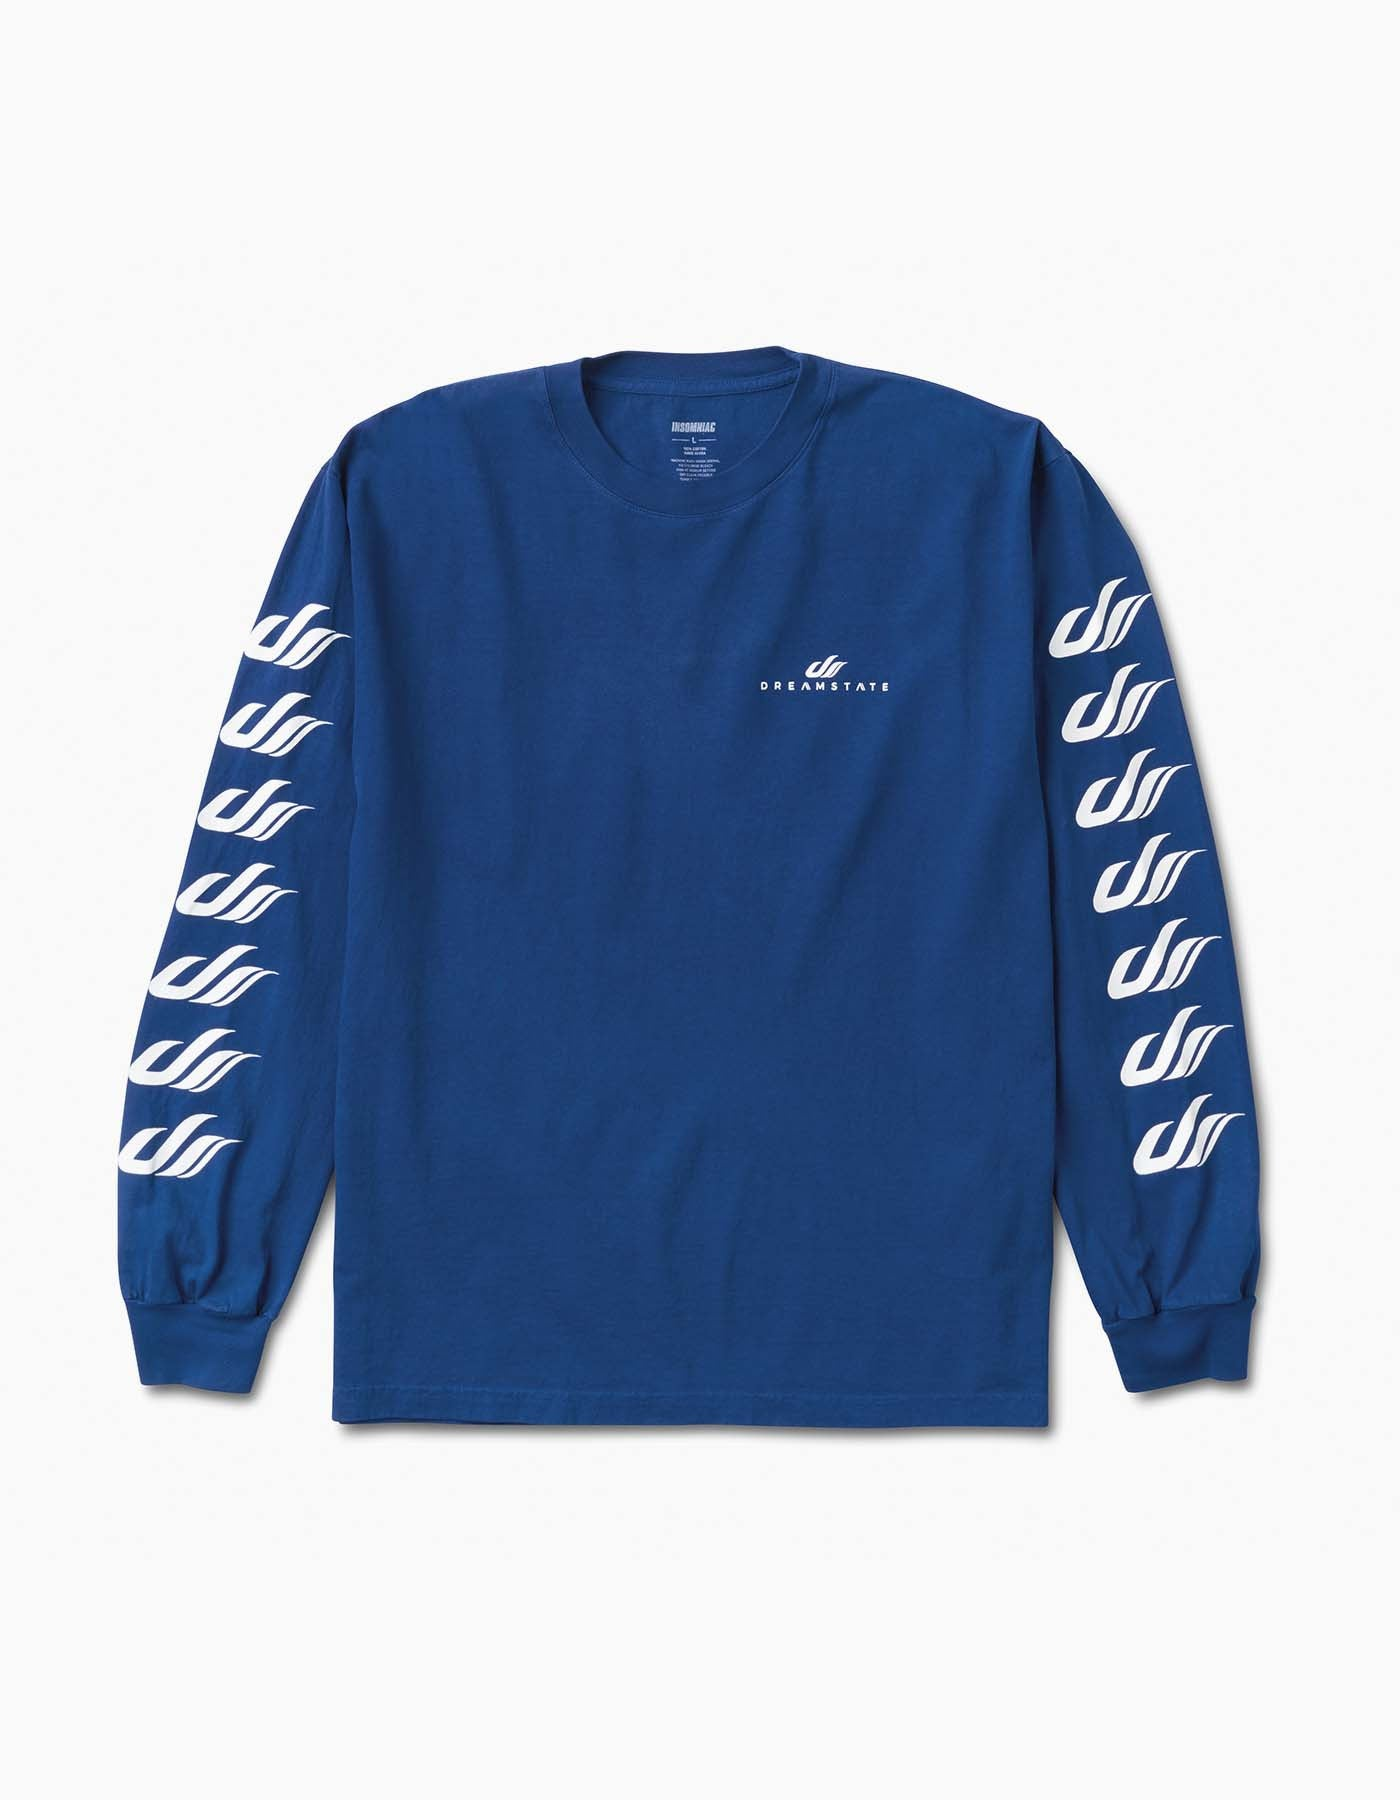 Dreamstate Sleevers Long Sleeve Tee Blue